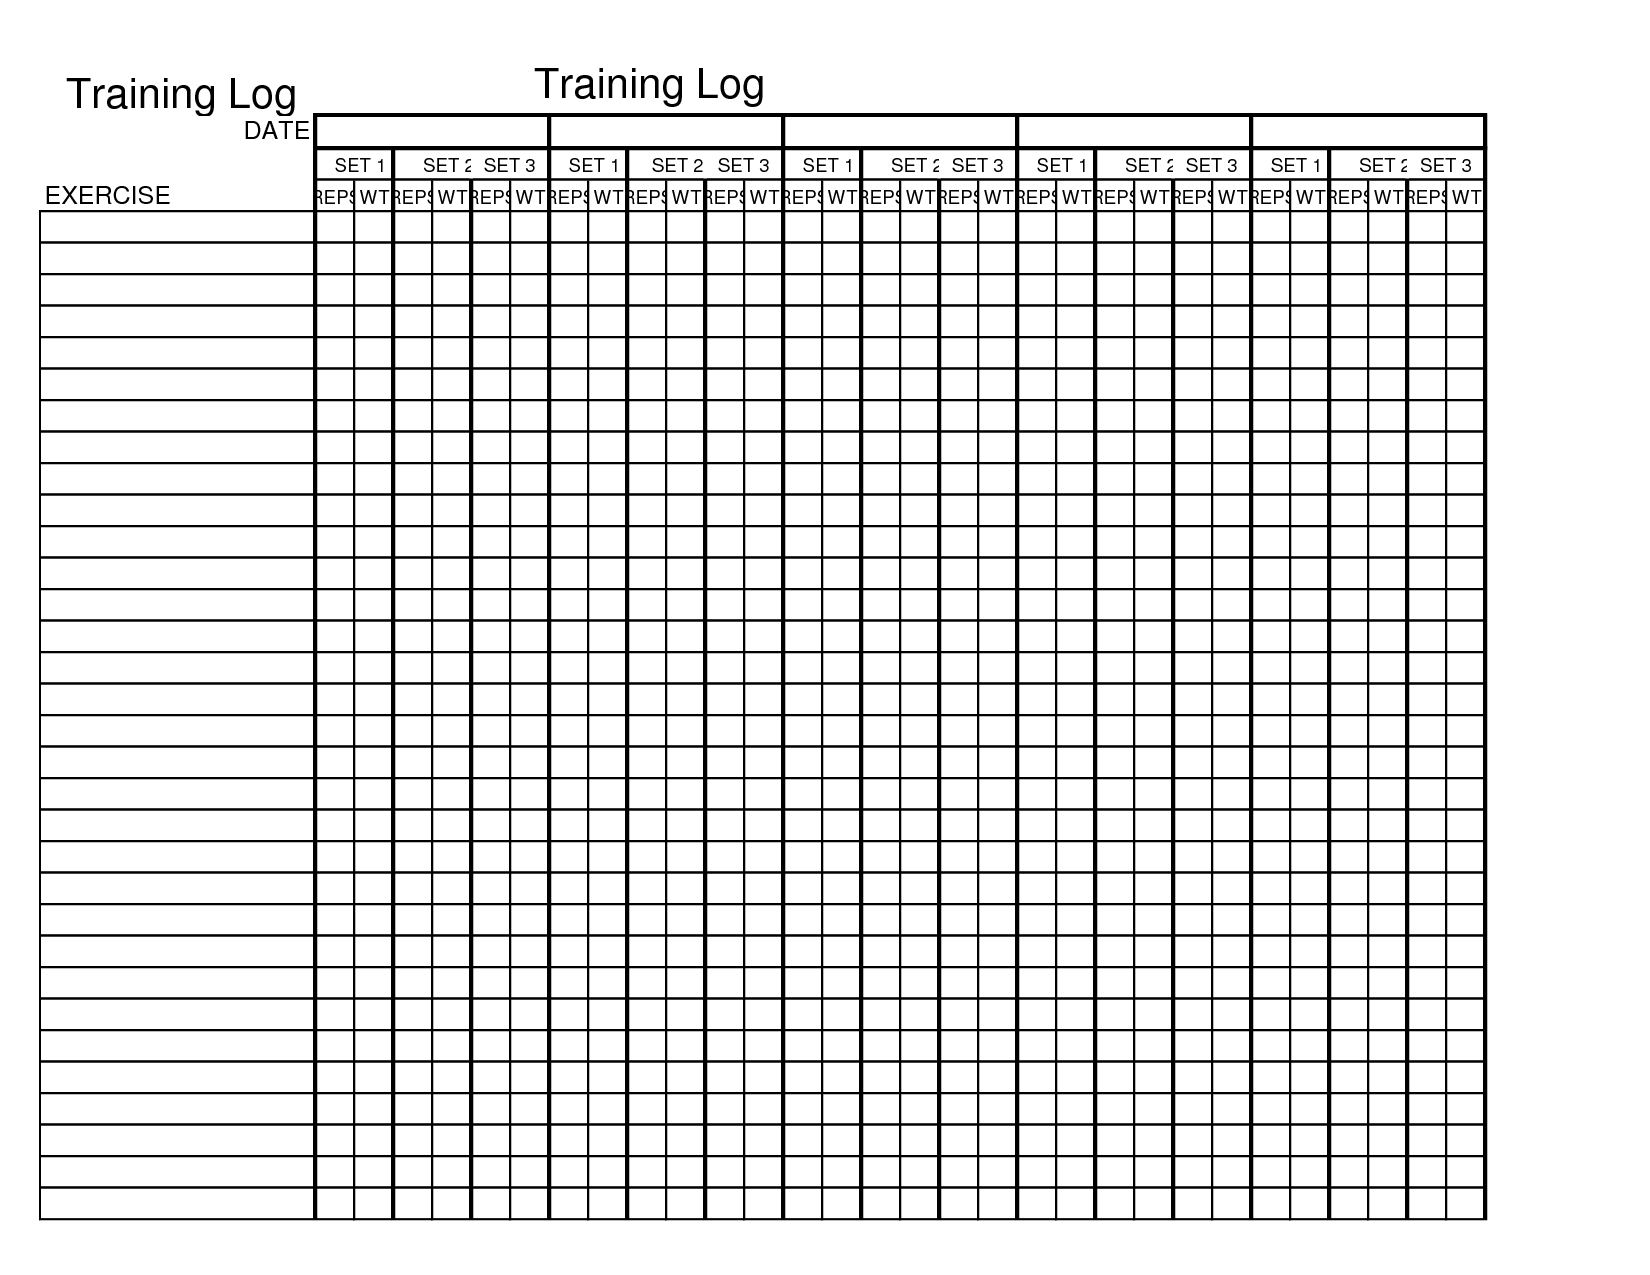 Training log template chp9ktls exercise pinterest workout 1650 x 1275 23 kb png workout log template excel alramifo Images